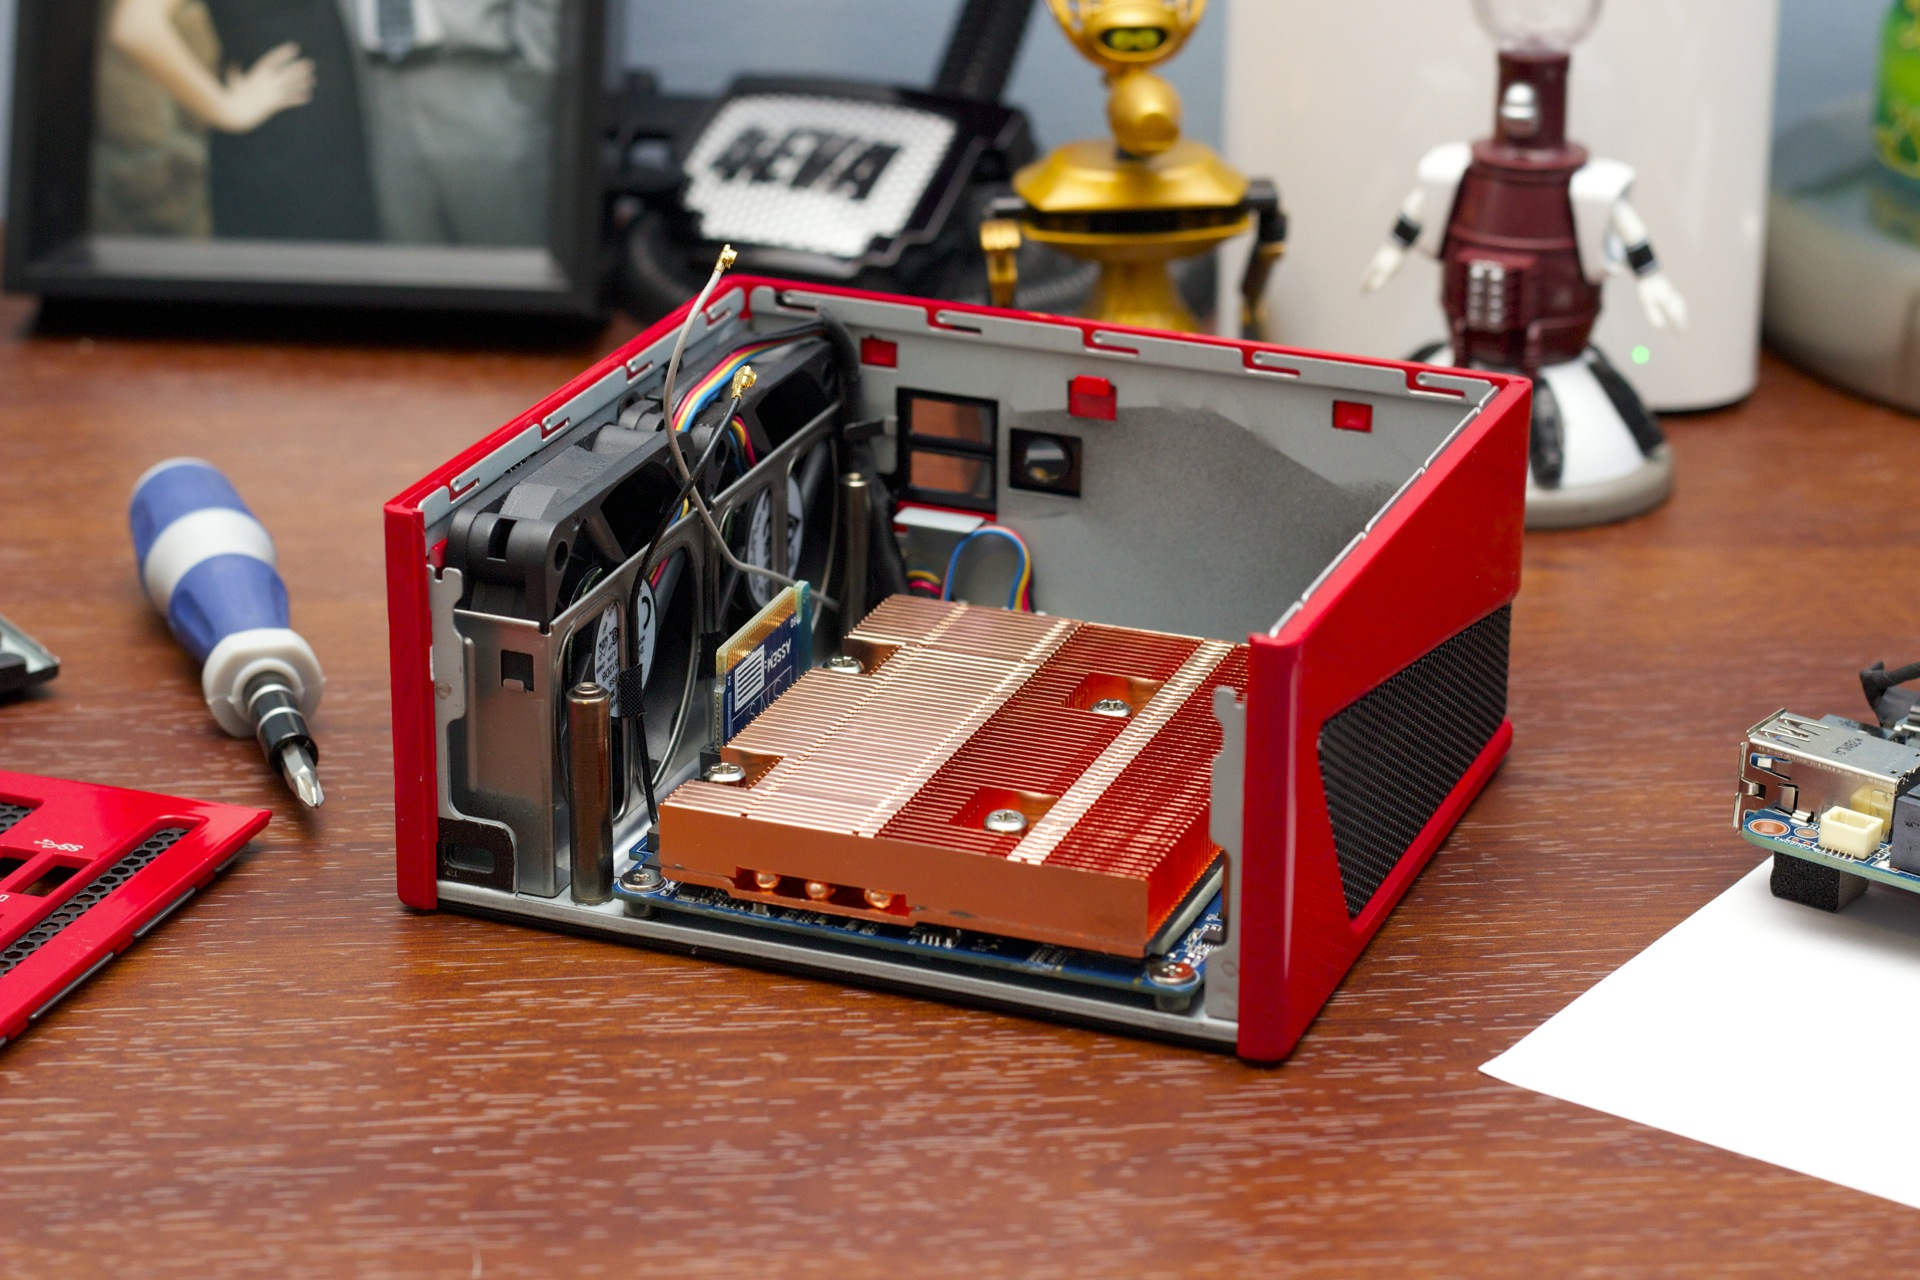 The Brix has two system boards on the inside: one with the RAM, SSD, CPU, and other system components on it (right, on edge of frame), and one that houses the GPU and its RAM (shown here under the large heatsink).